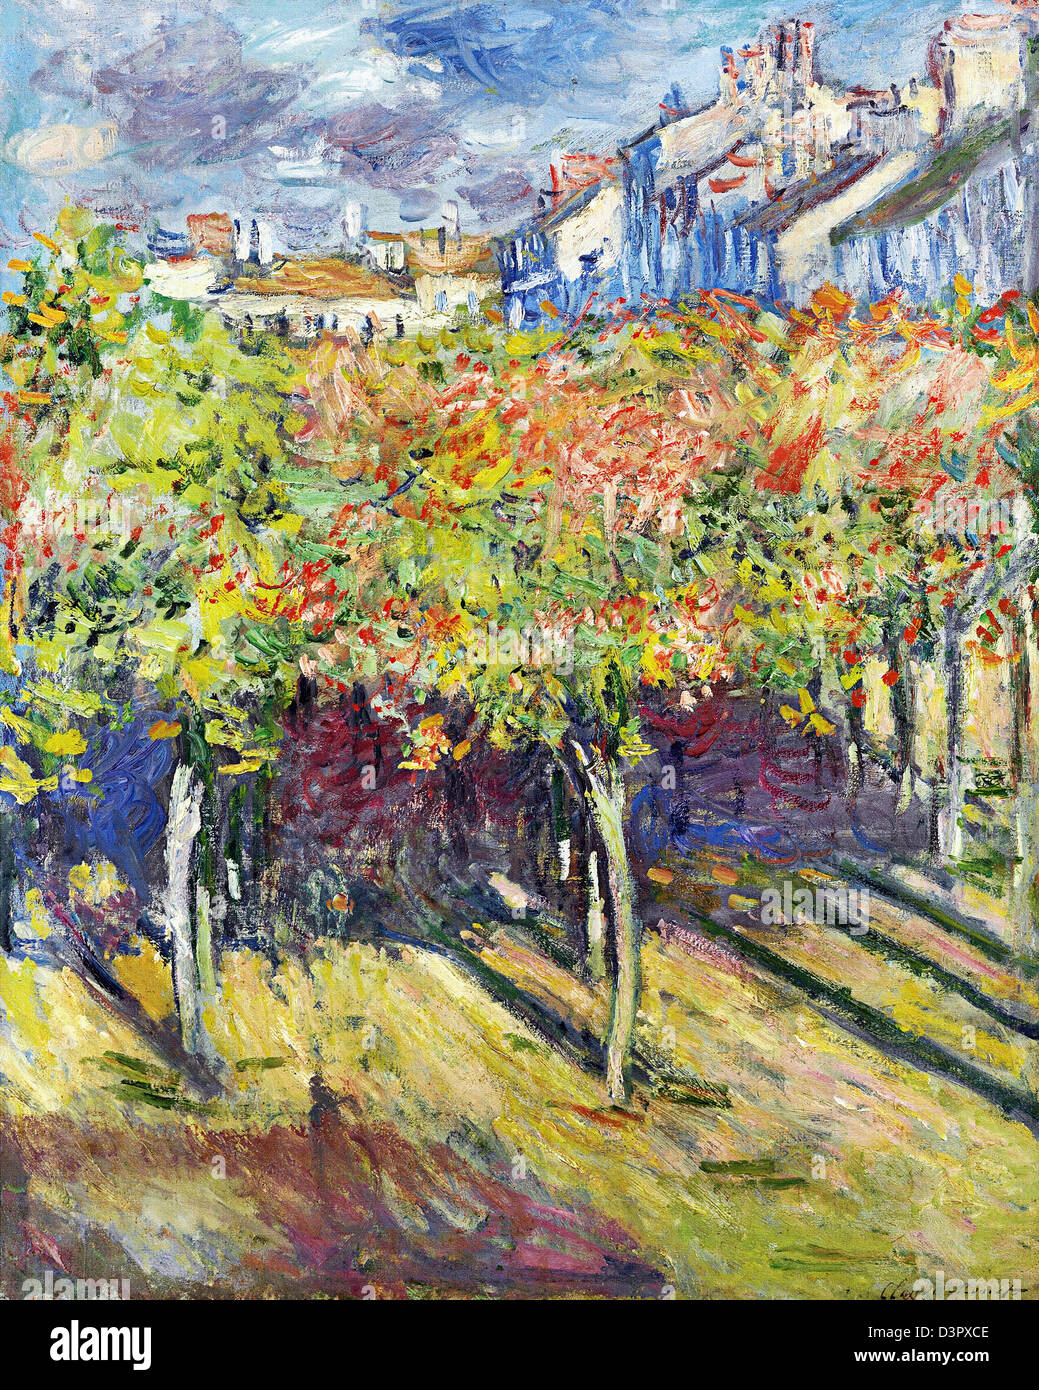 Claude Monet, The Lindens of Poissy, 1882 Oil on canvas. - Stock Image